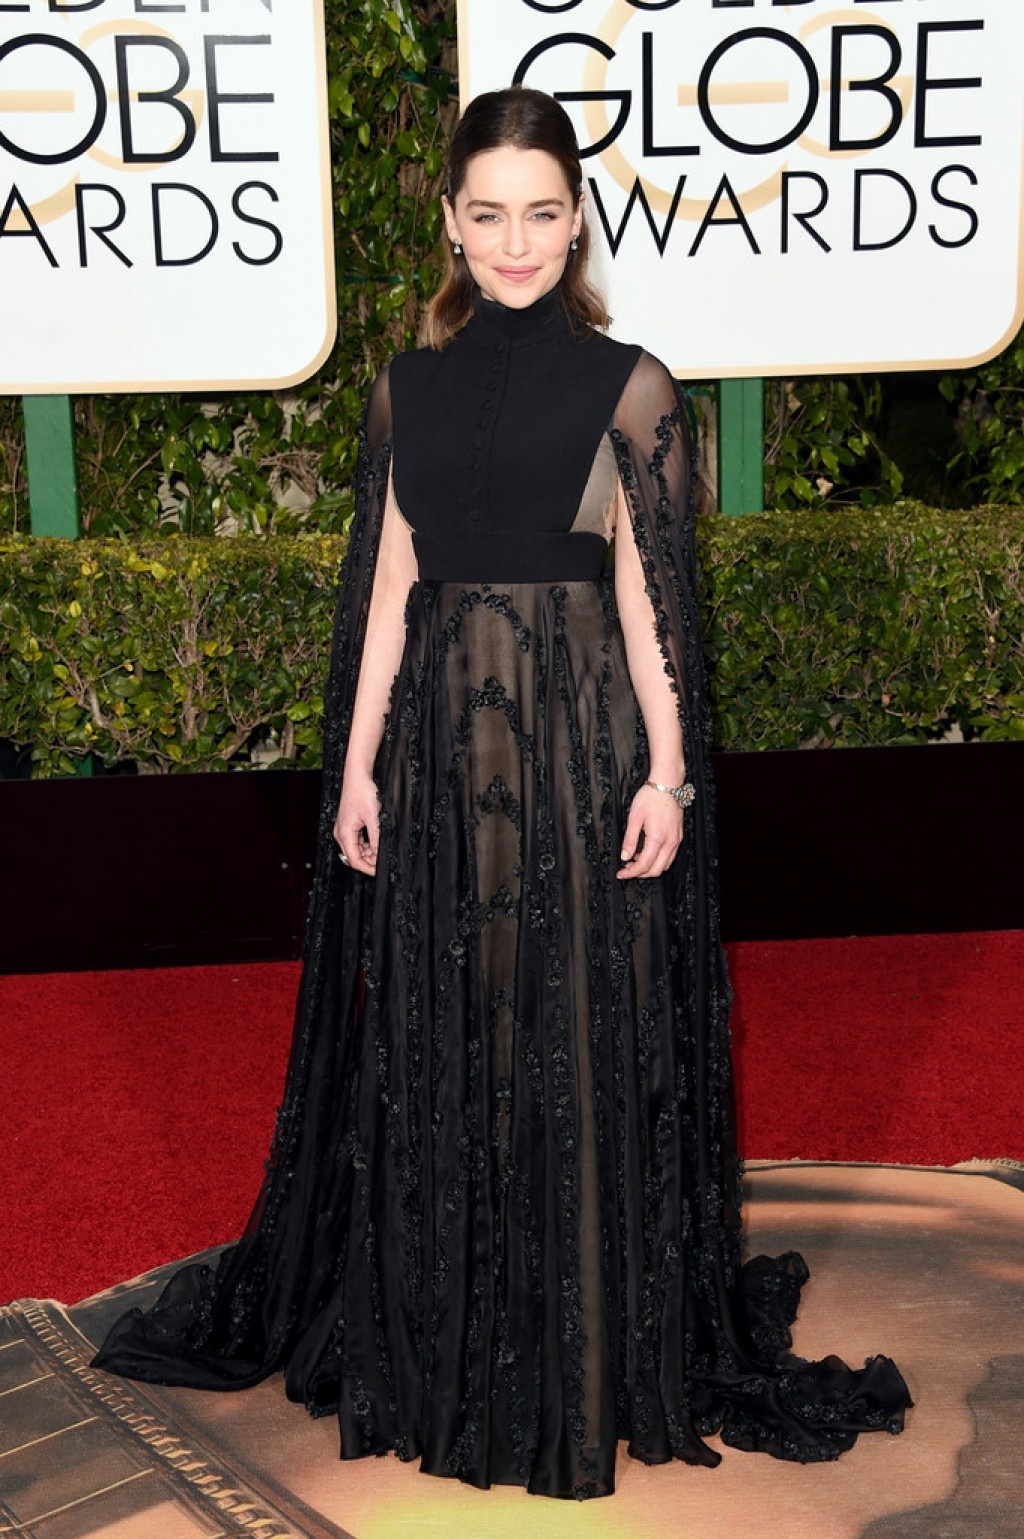 Emilia-Clarke-2016-Golden-Globes-Valentino-dress-1024x1539